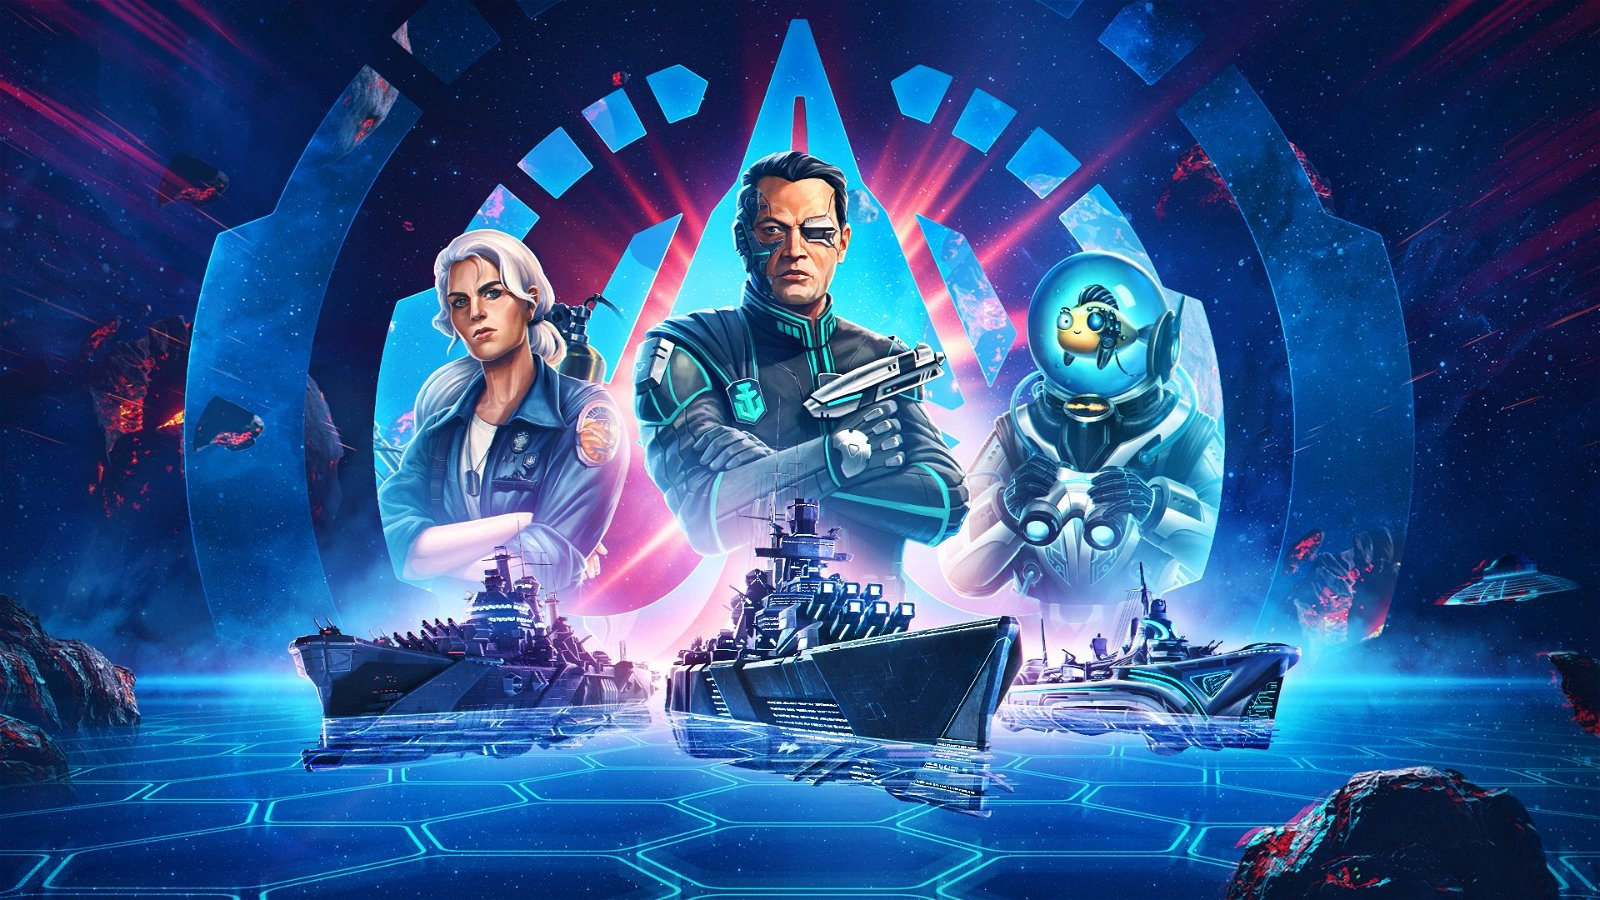 World of Warships Takes the Fight To Space for April Fool's Event